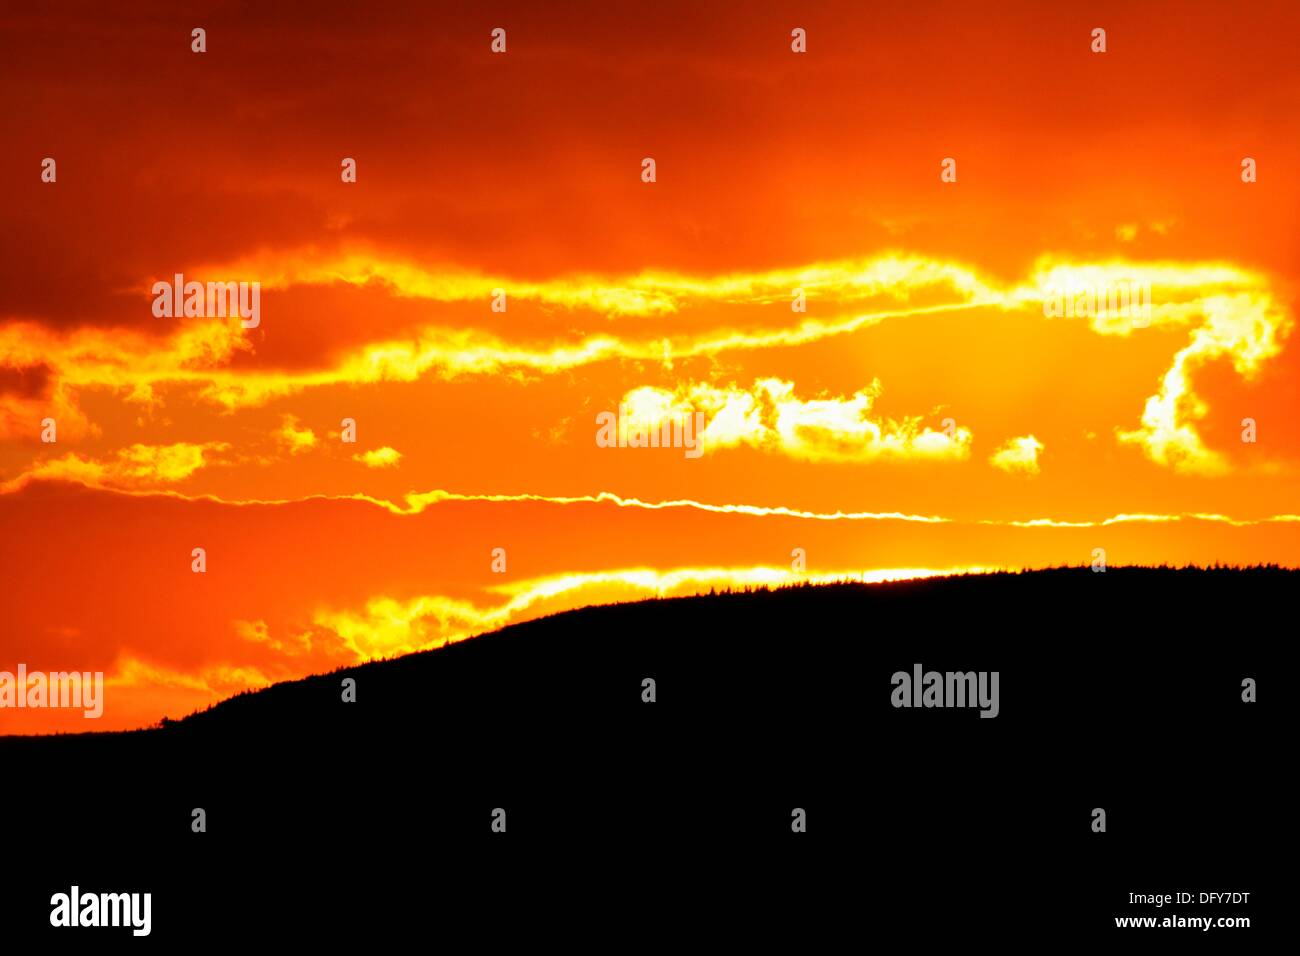 a blazing red sunset over Mt. Hermon - Stock Image